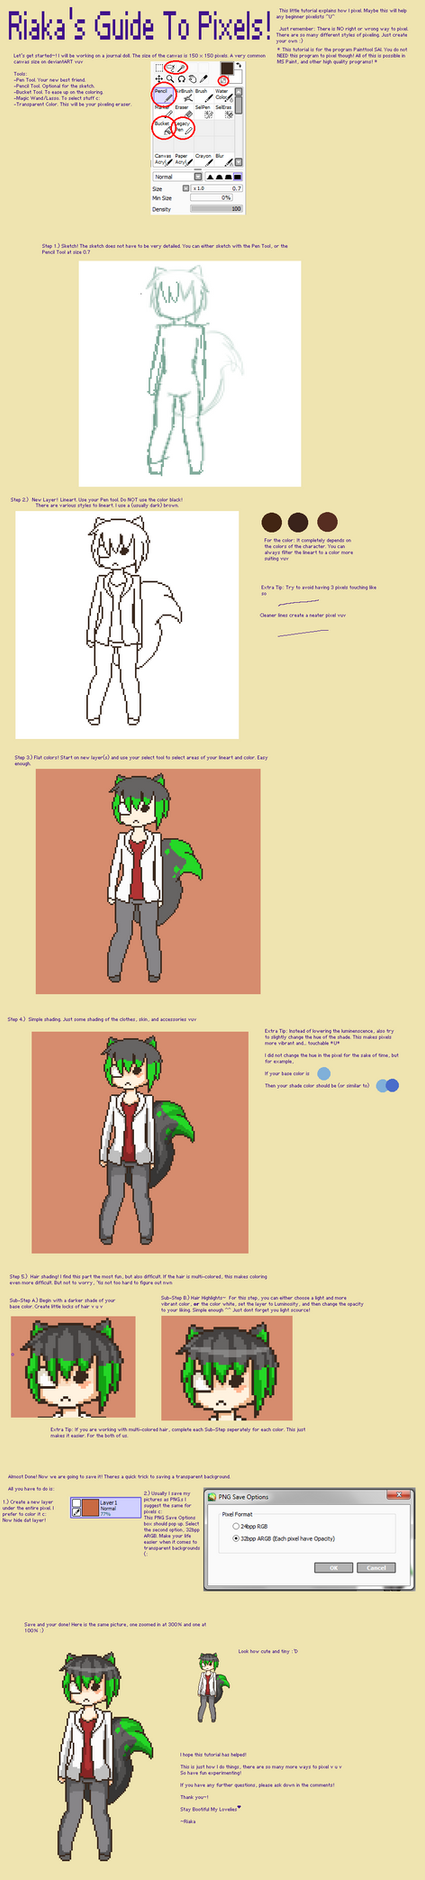 Riaka's Guide to Pixeling by tiriii